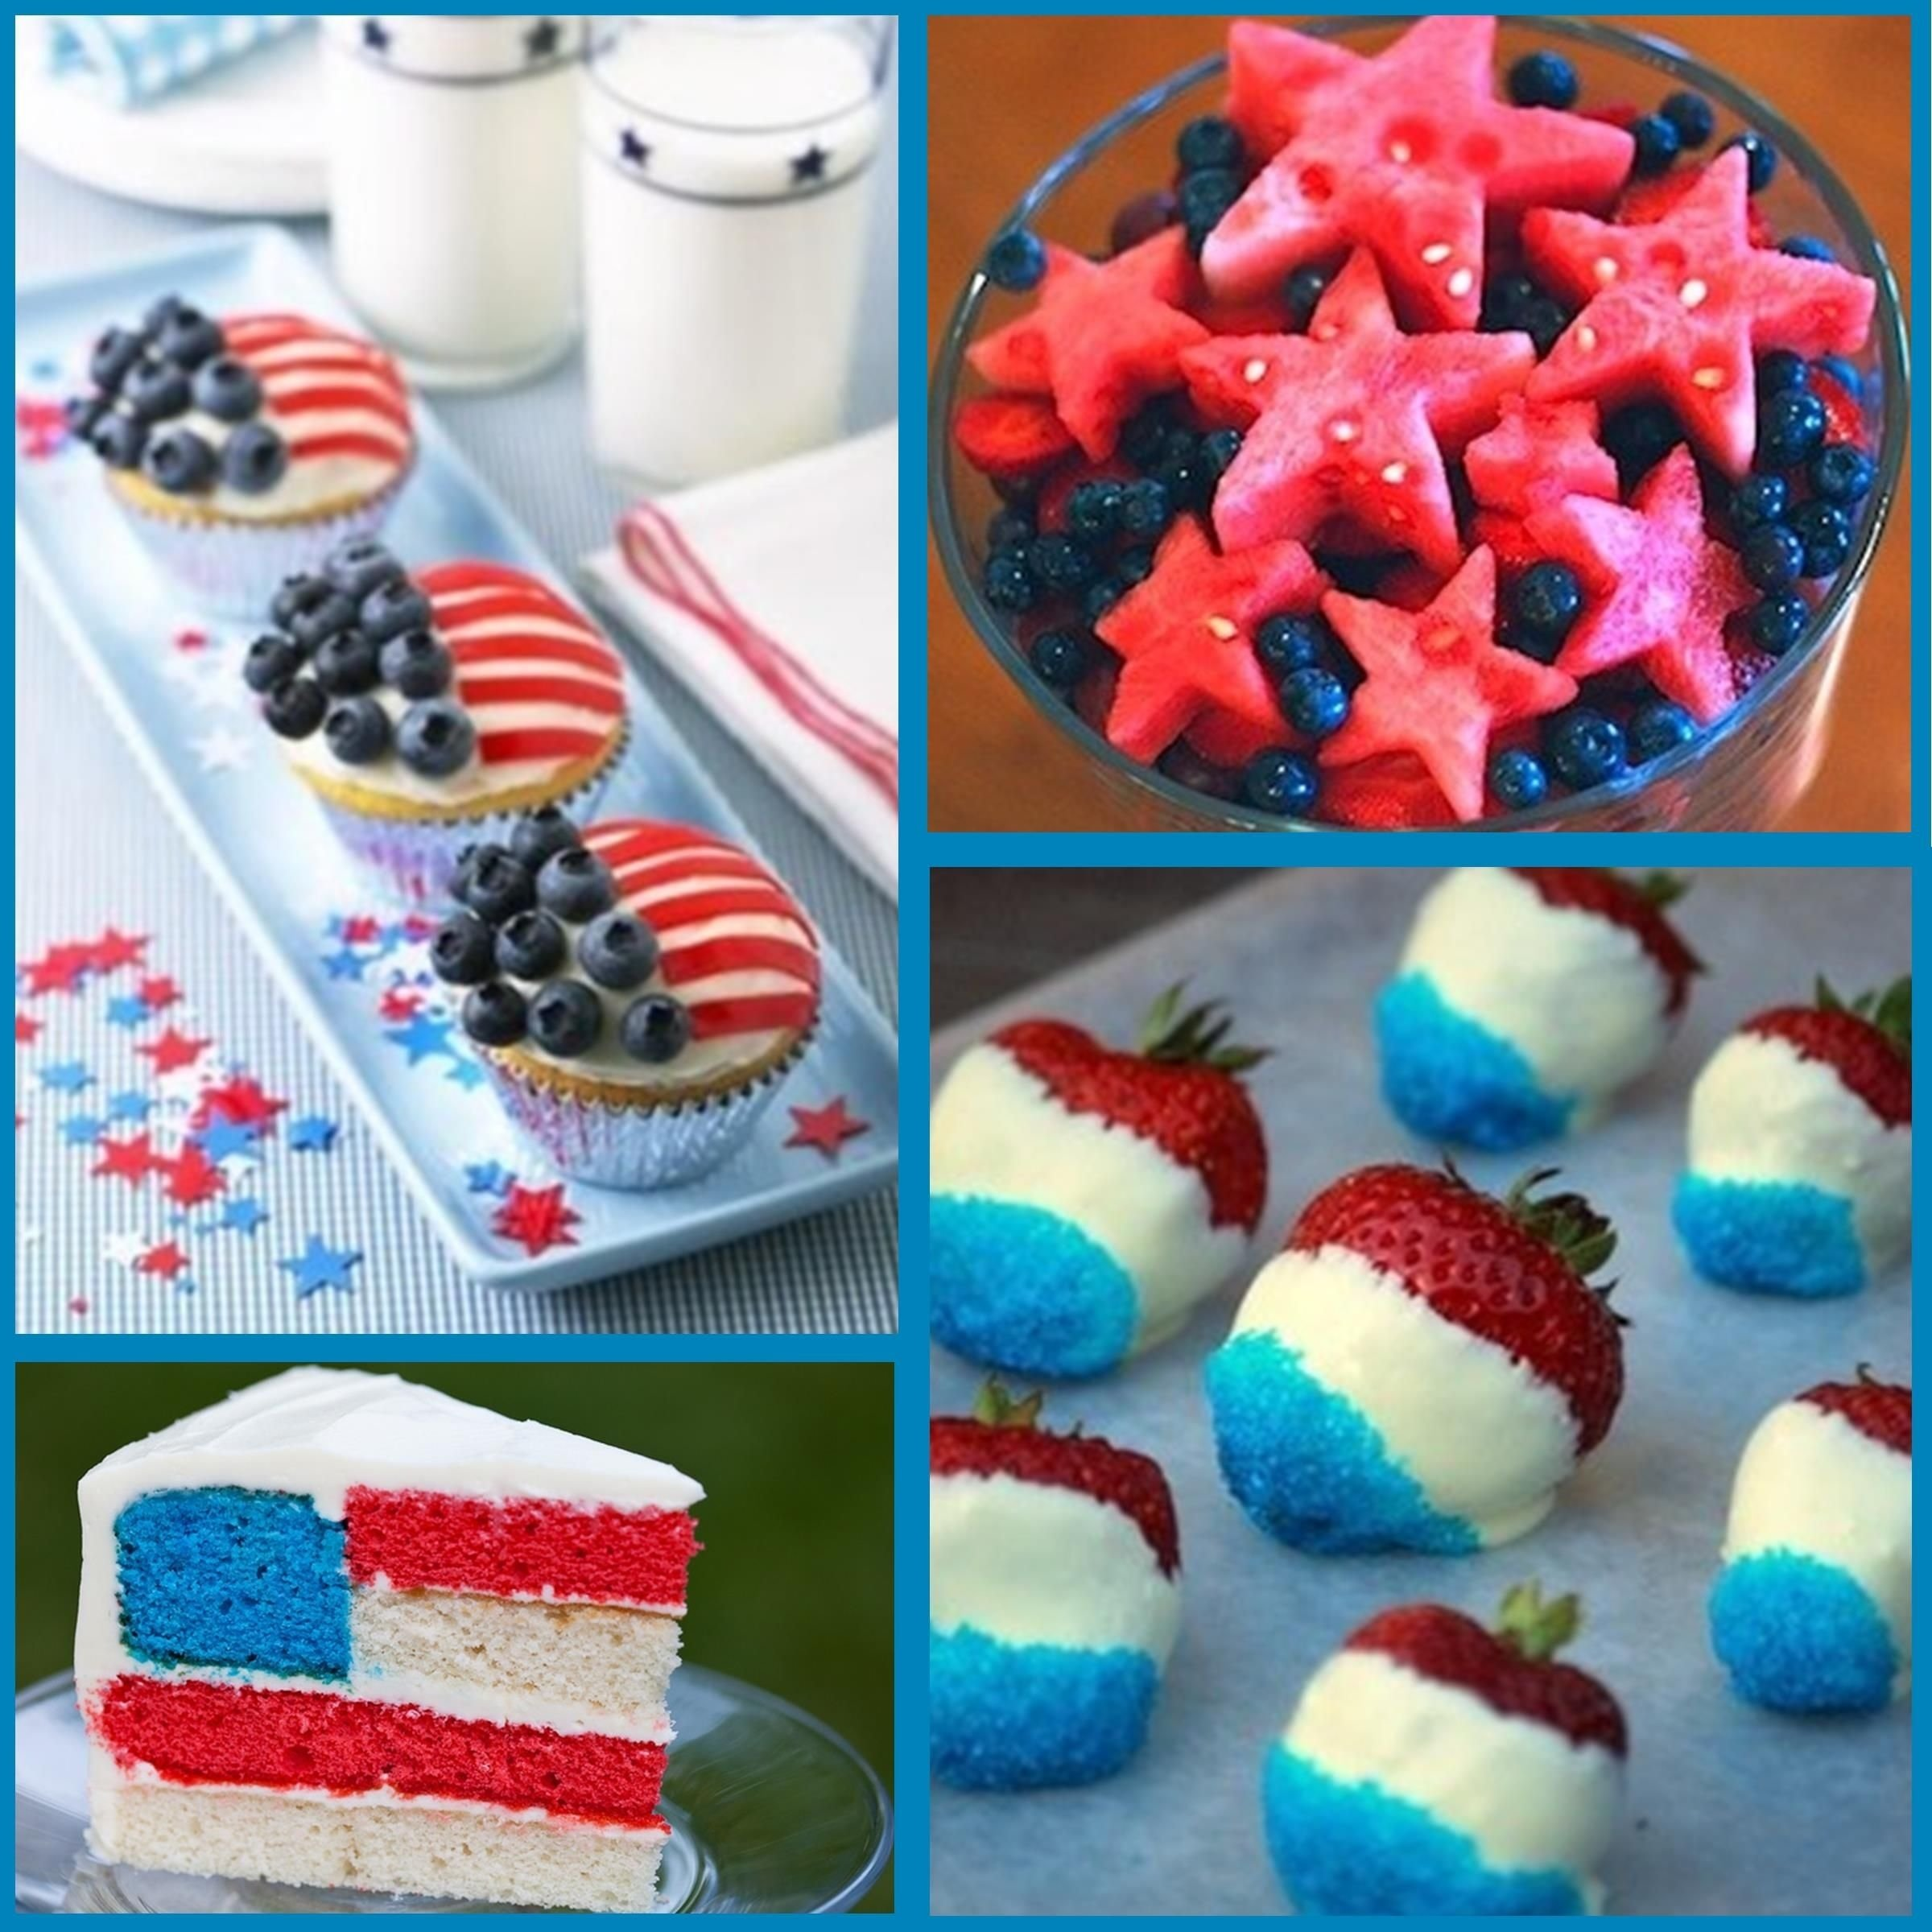 10 Lovable Fourth Of July Dinner Ideas fourth of july desserts 4th of july food ideas food ideas food